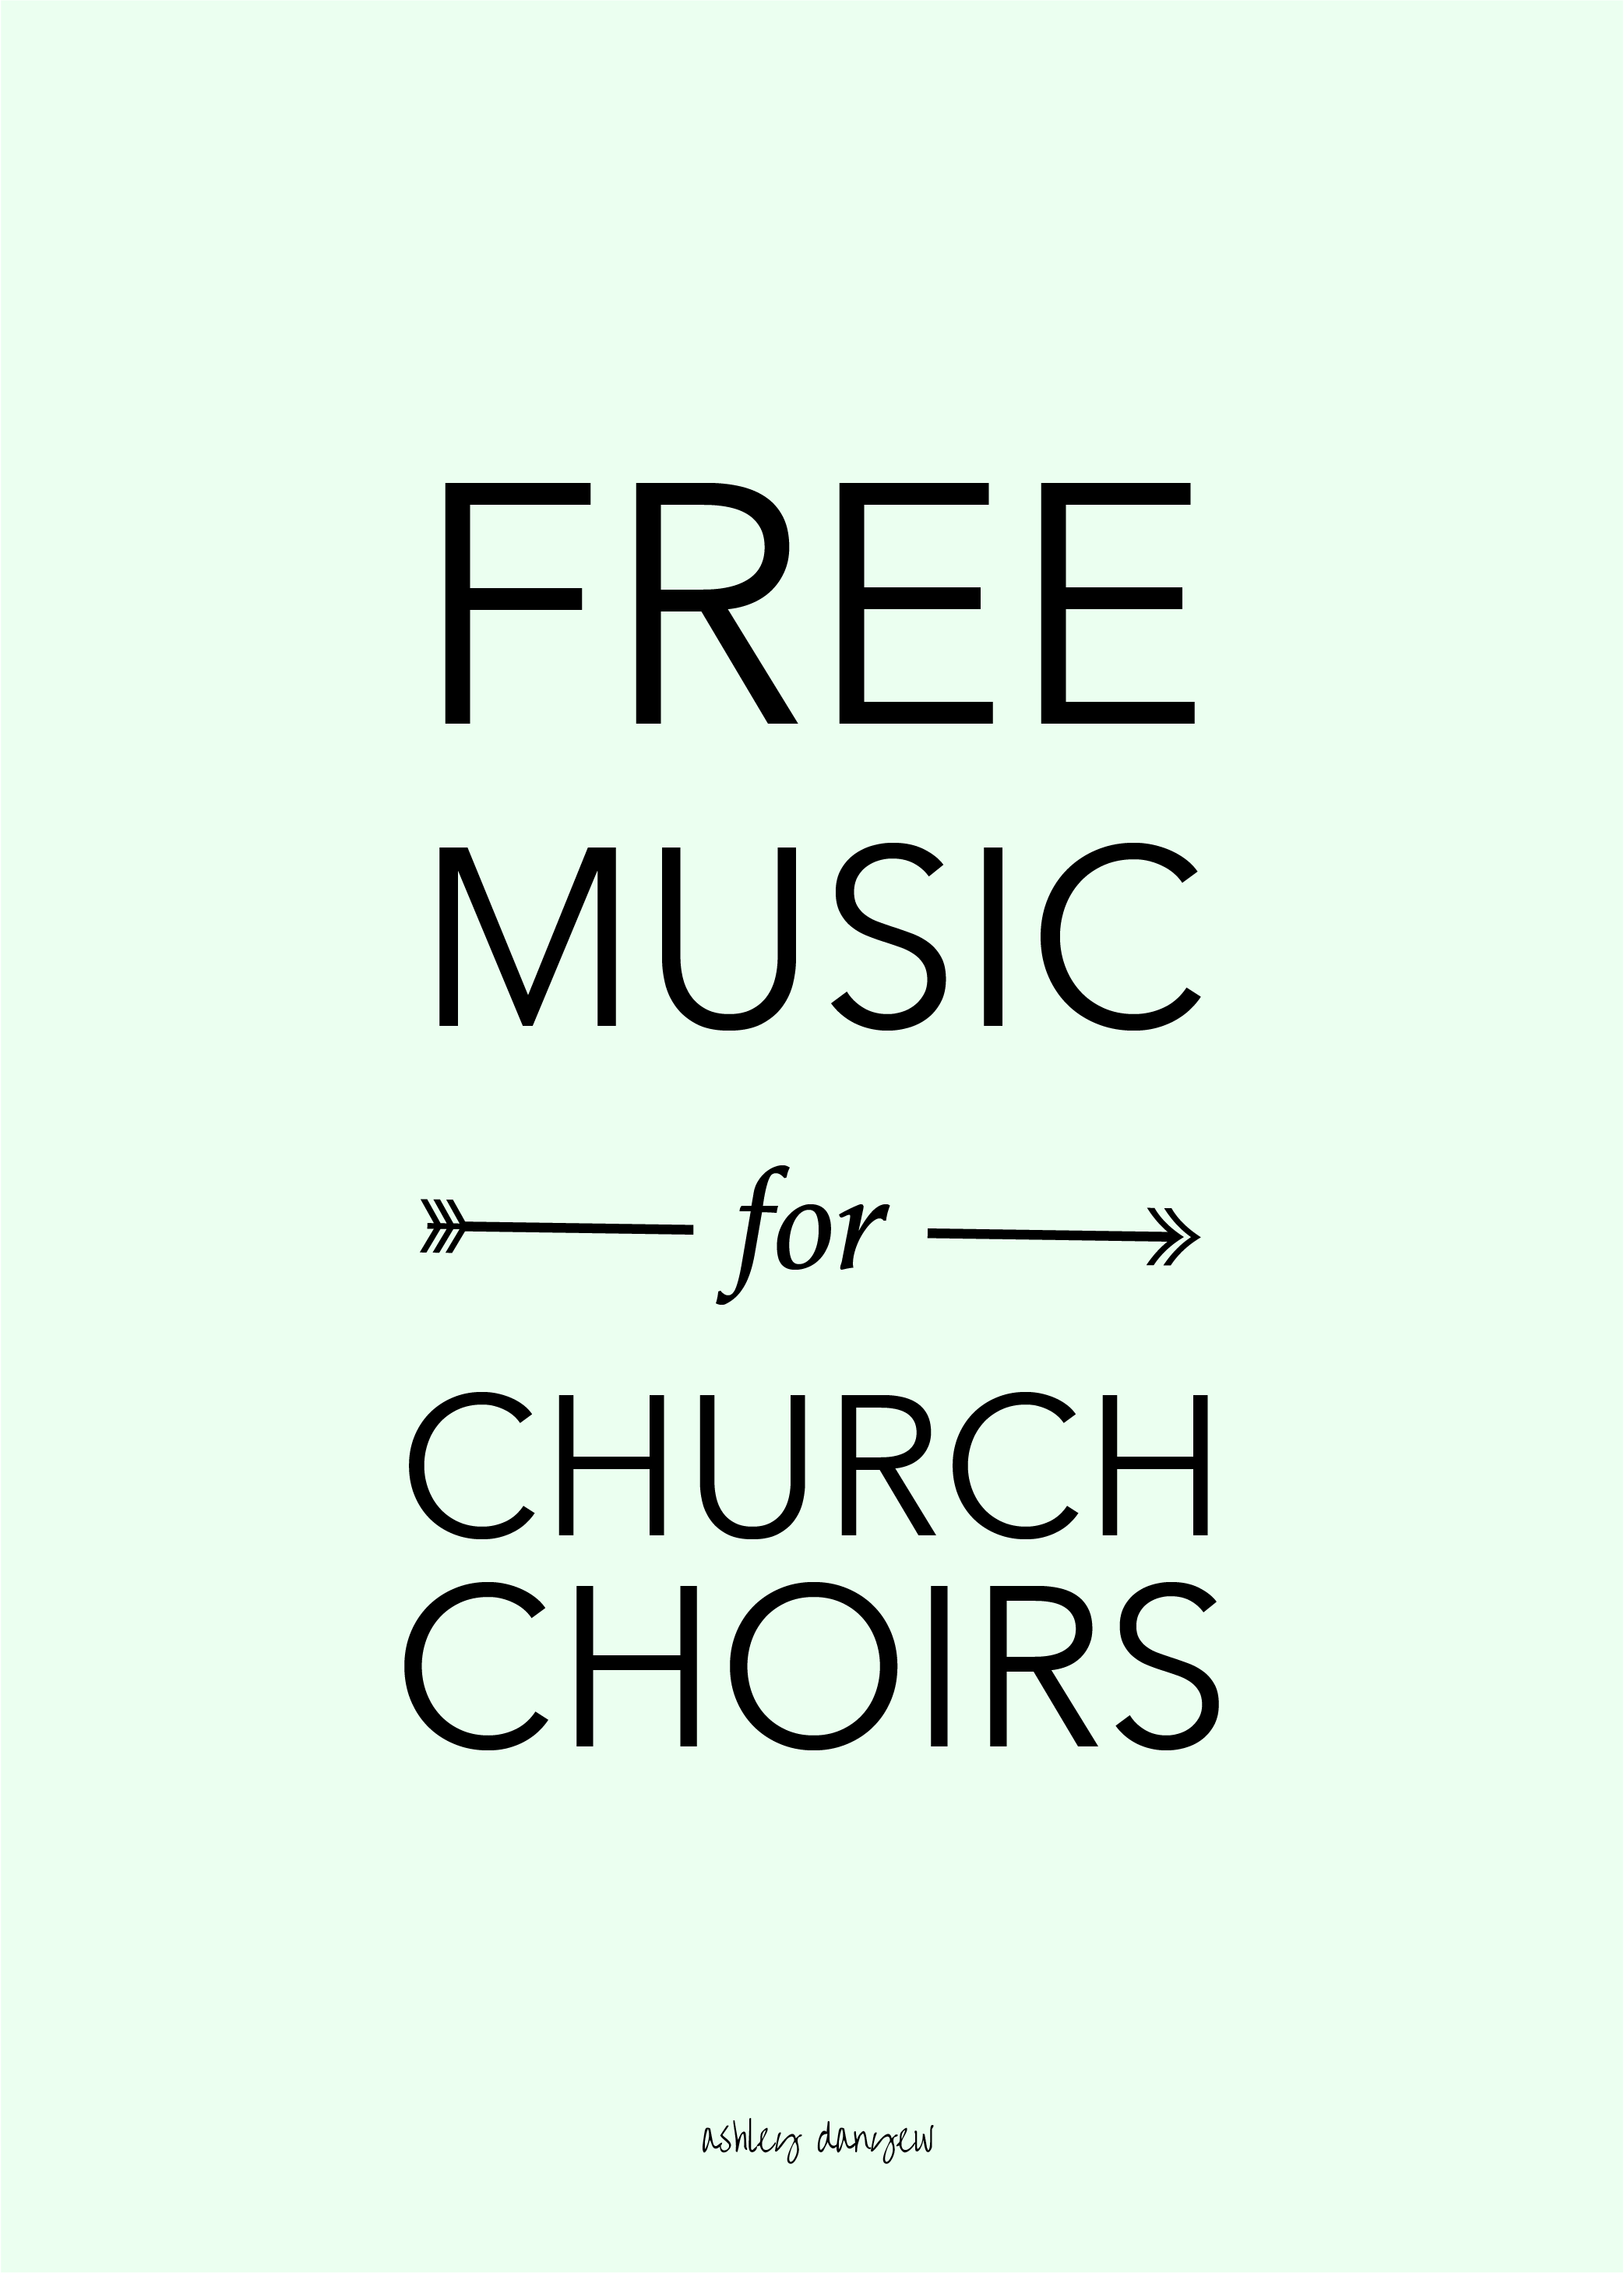 Copy of Free Music for Church Choirs